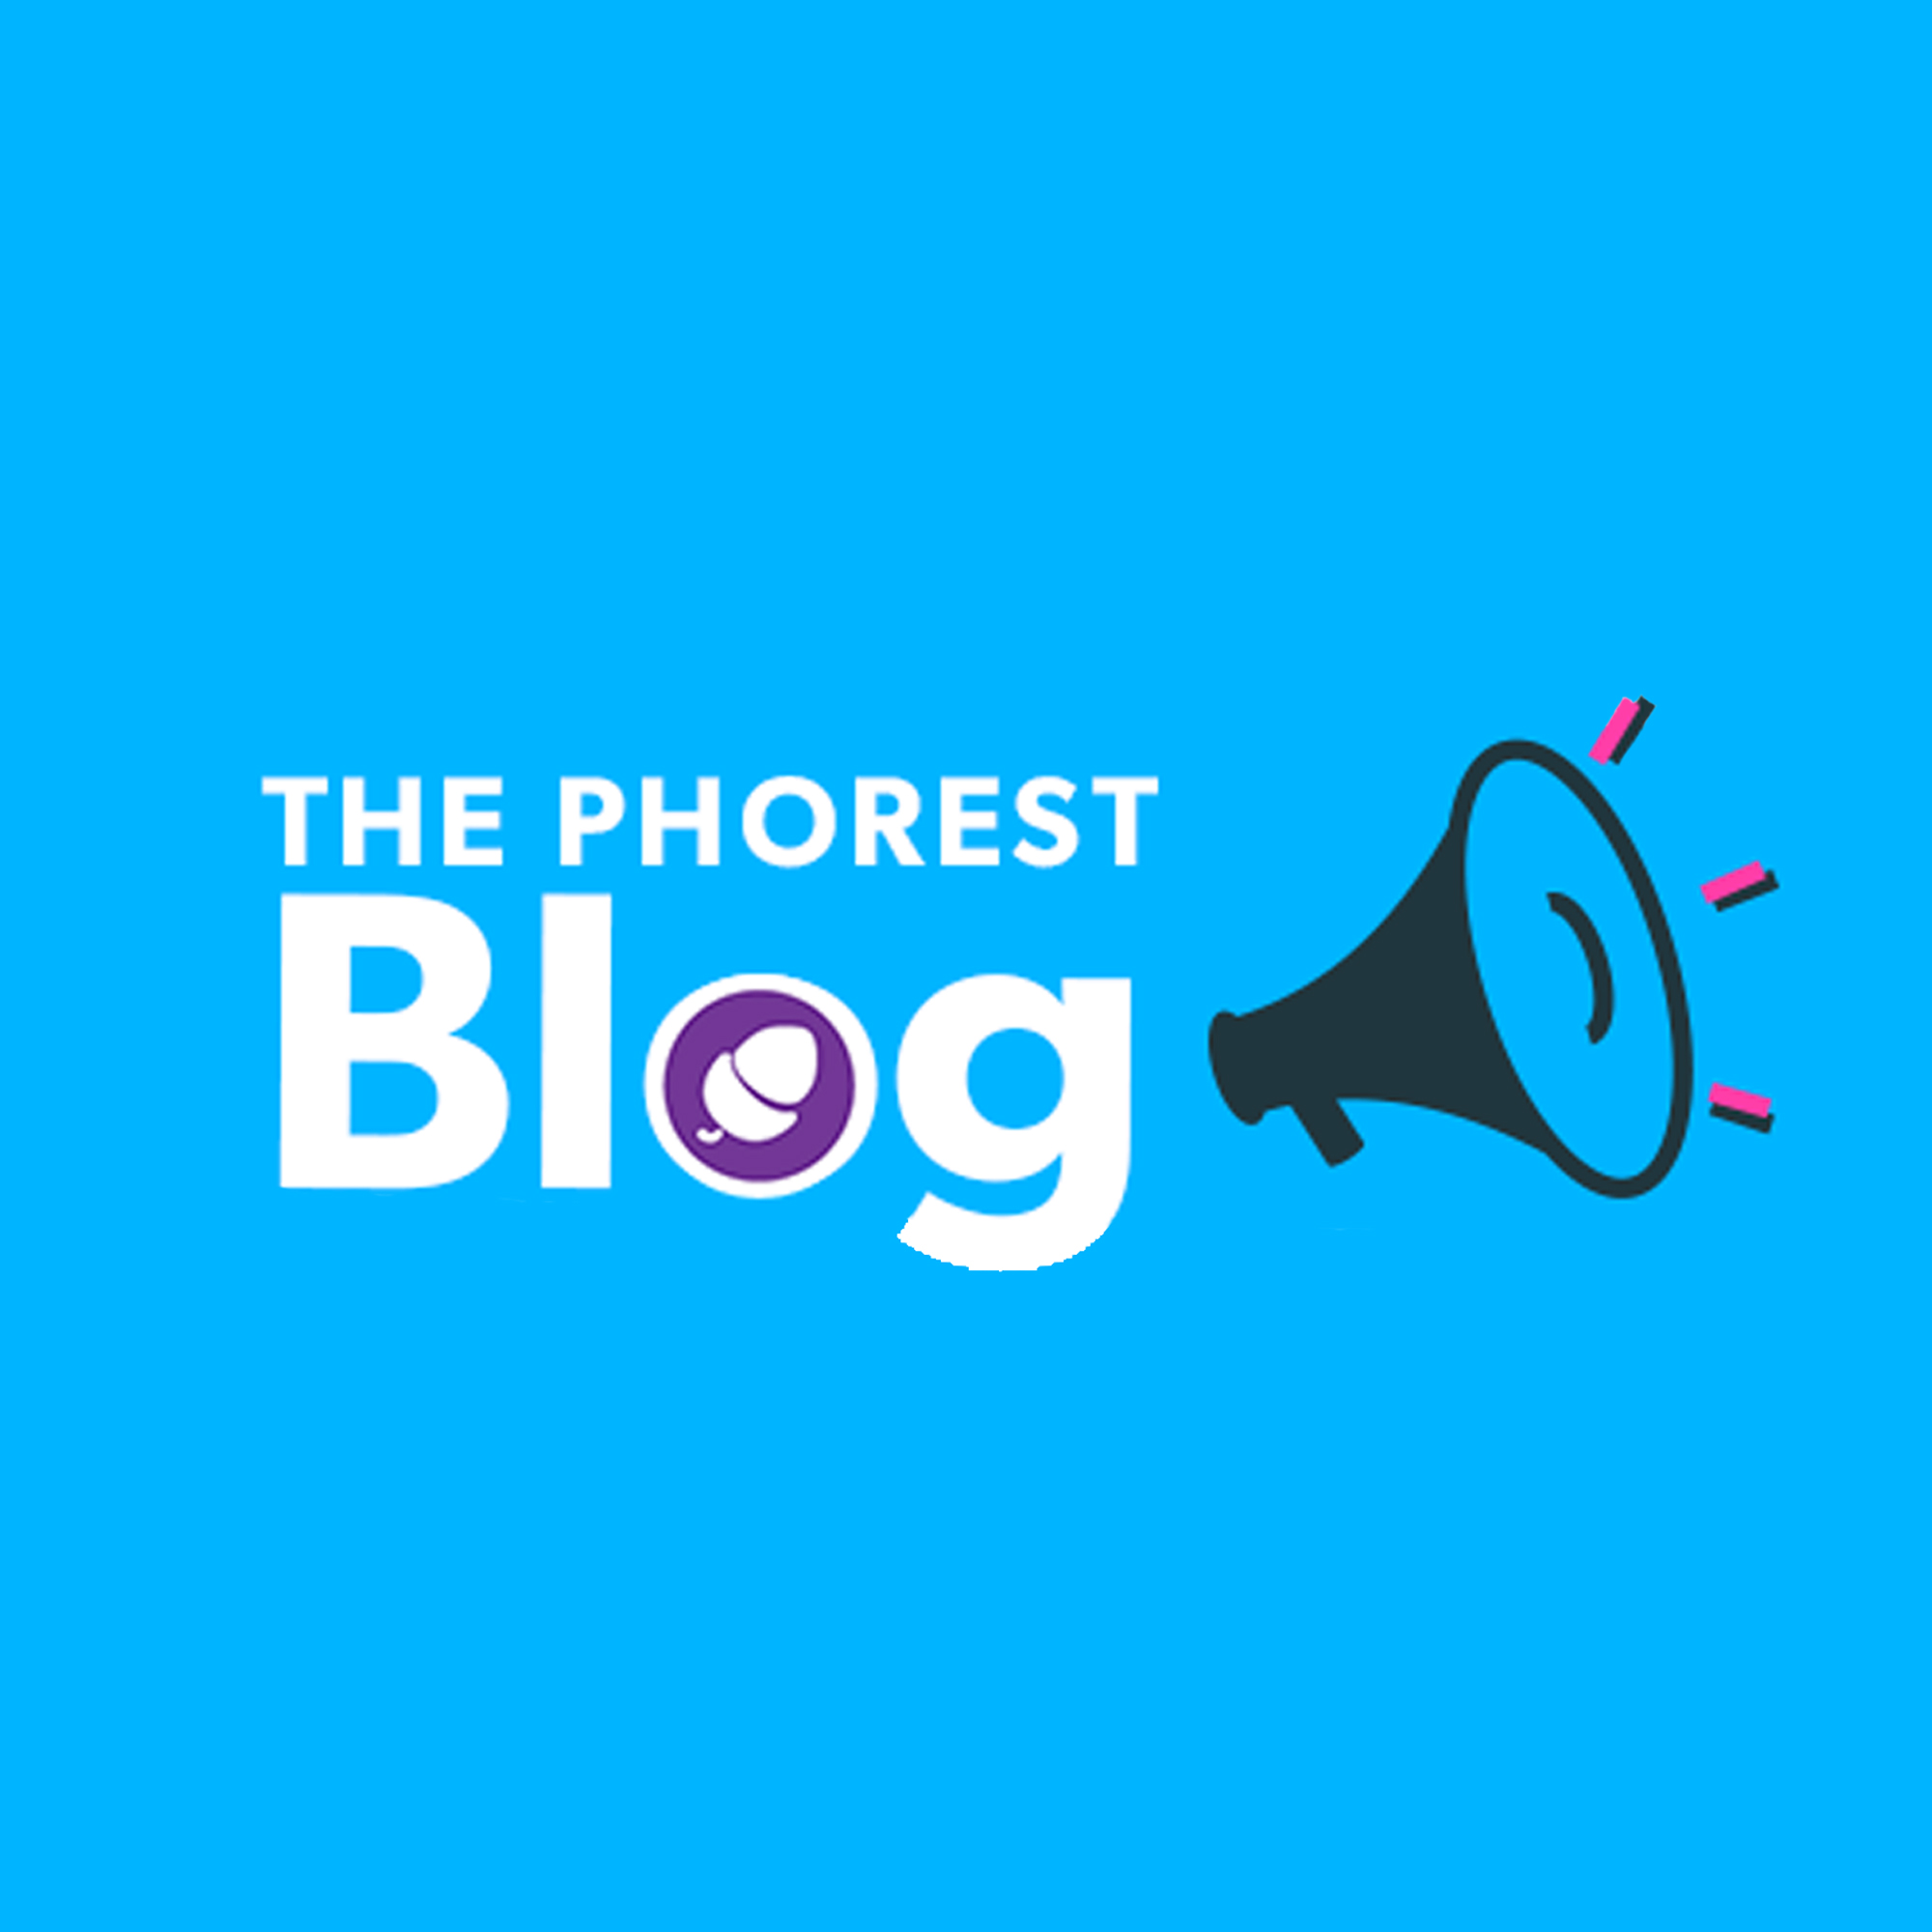 The Phorest Blog